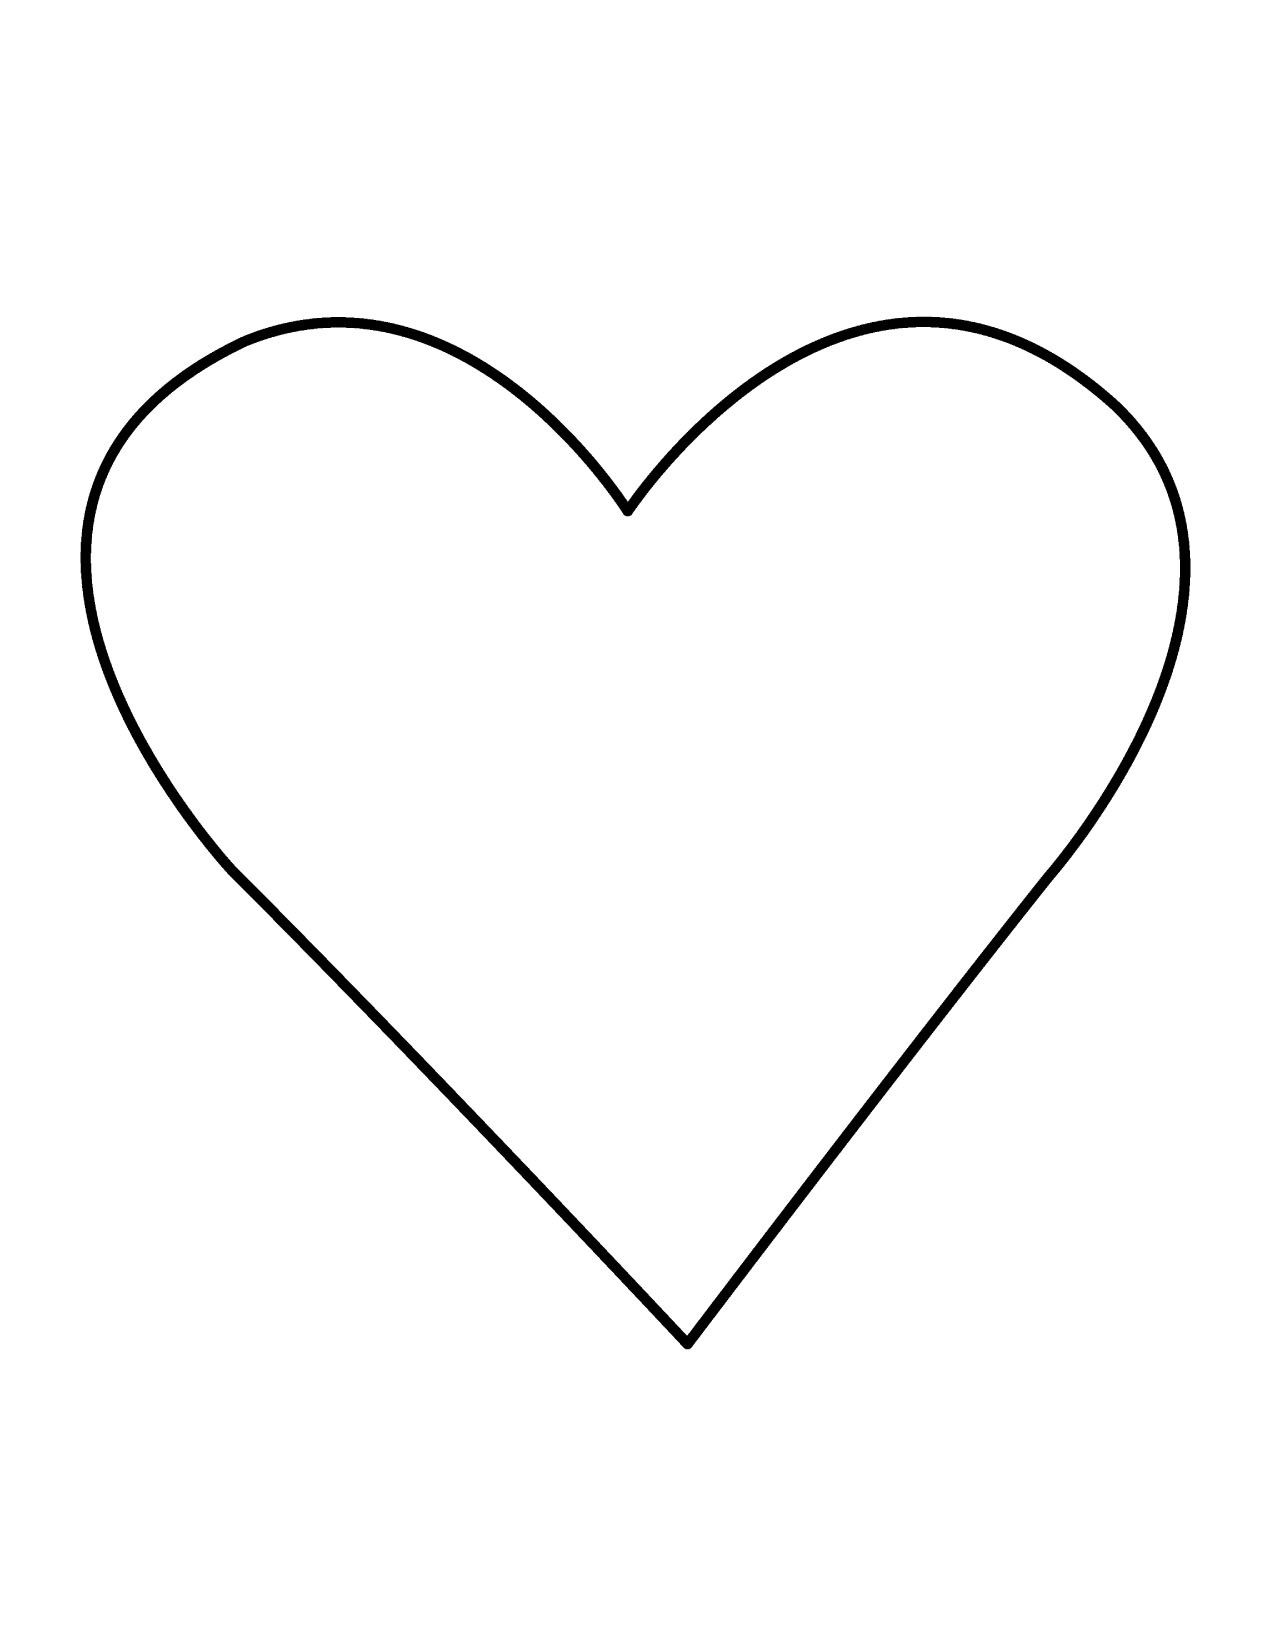 Black heart clip art heart outline free clipart images